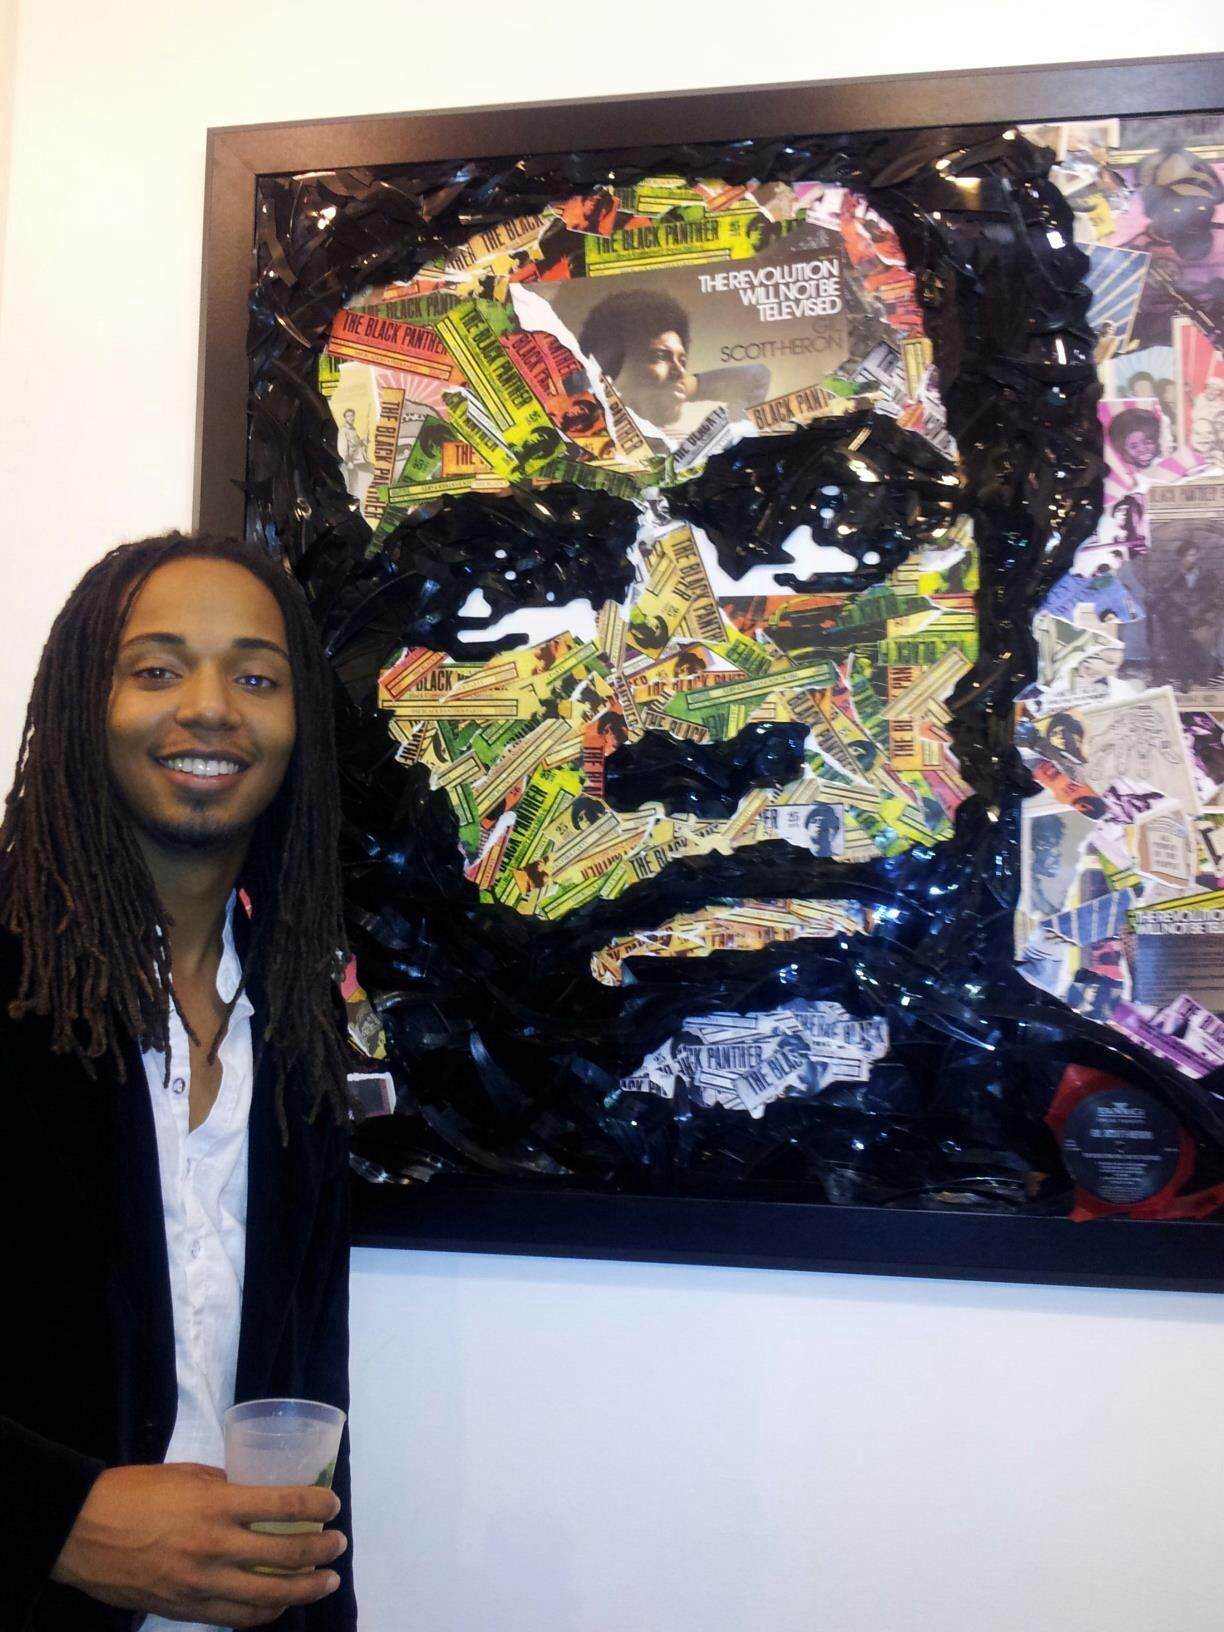 About.htm >> Walter Lobyn Hamilton Pictured Here Vinyl Record Artist Http